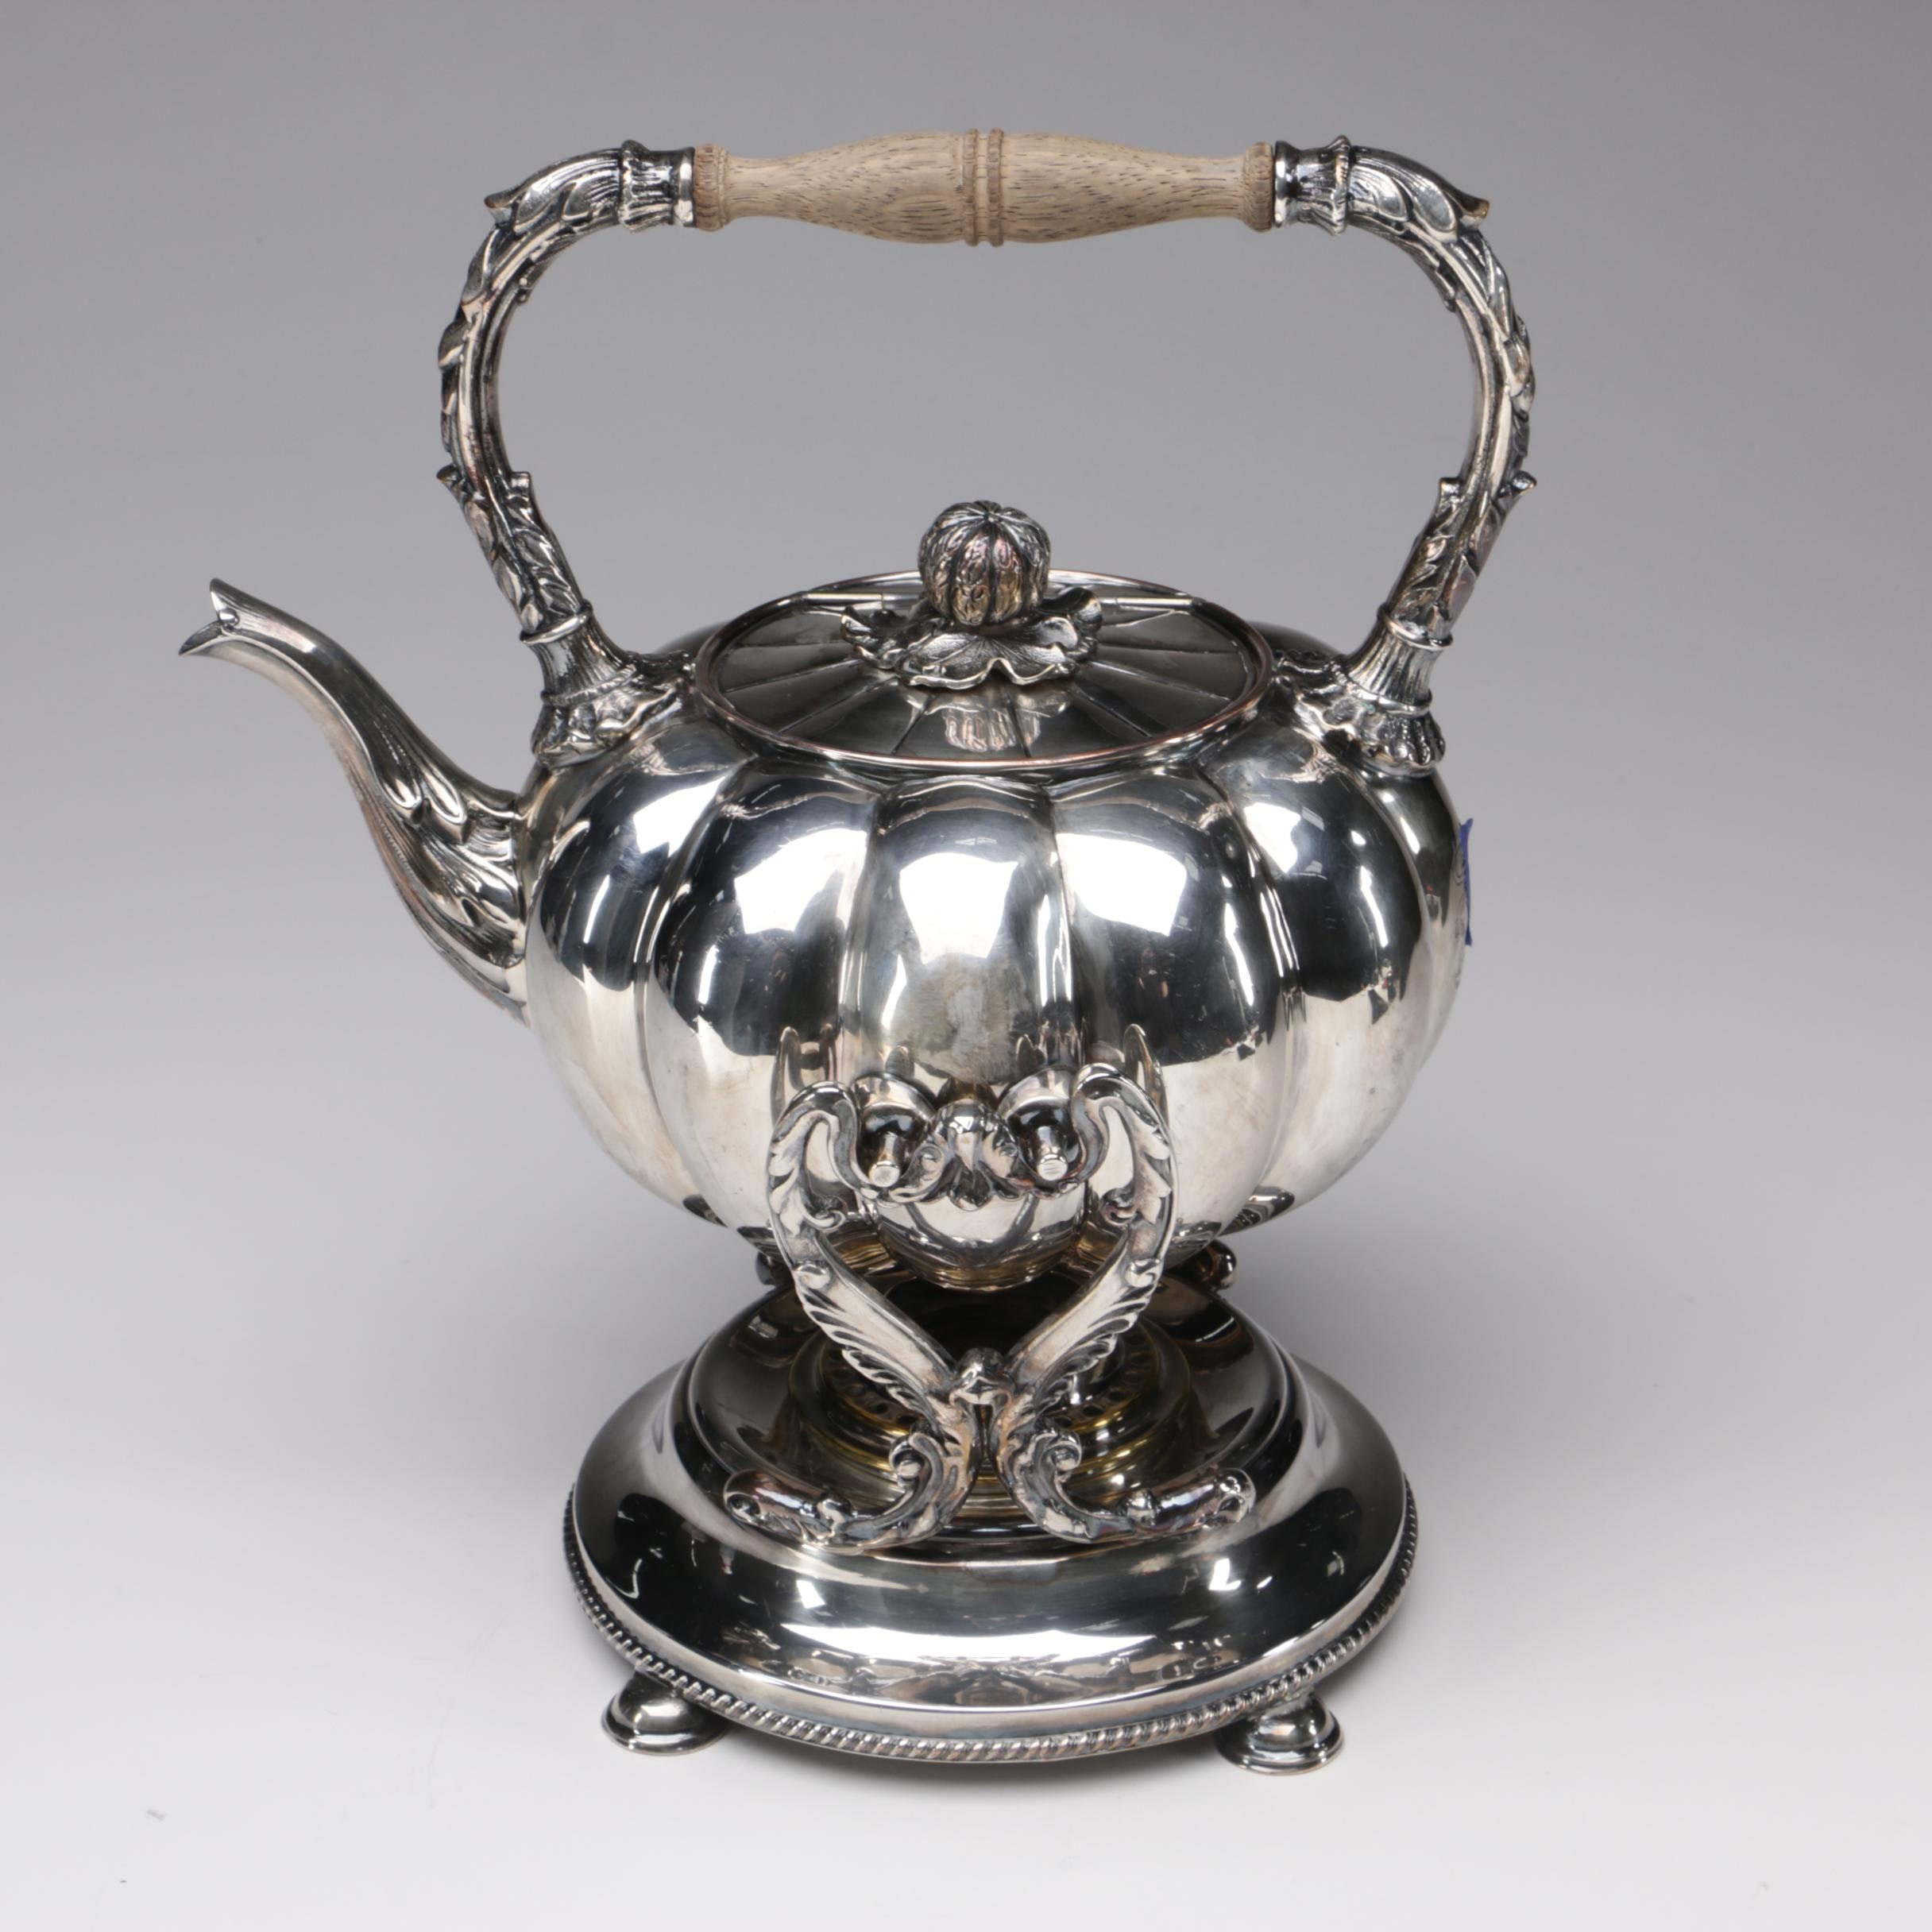 """British Silver Plate """"Gourd"""" Tilting Tea Kettle, Late 19th/Early 20th Century"""